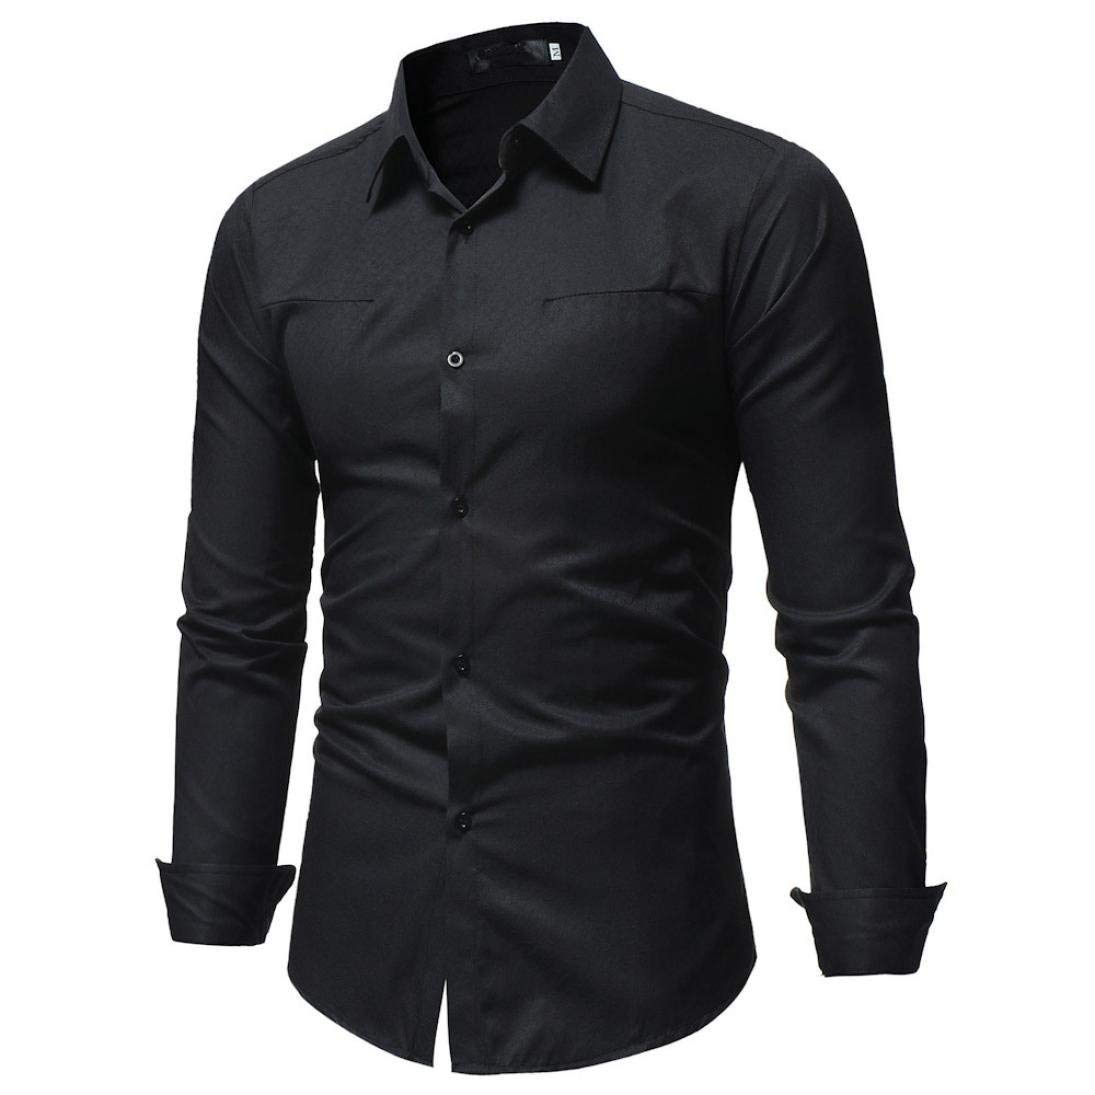 JaHGDU Mens Shirt Style and Solid Color Male Casual Long Sleeve Shirt Fashion Slim Fit Black Blue Wild Tight for Men